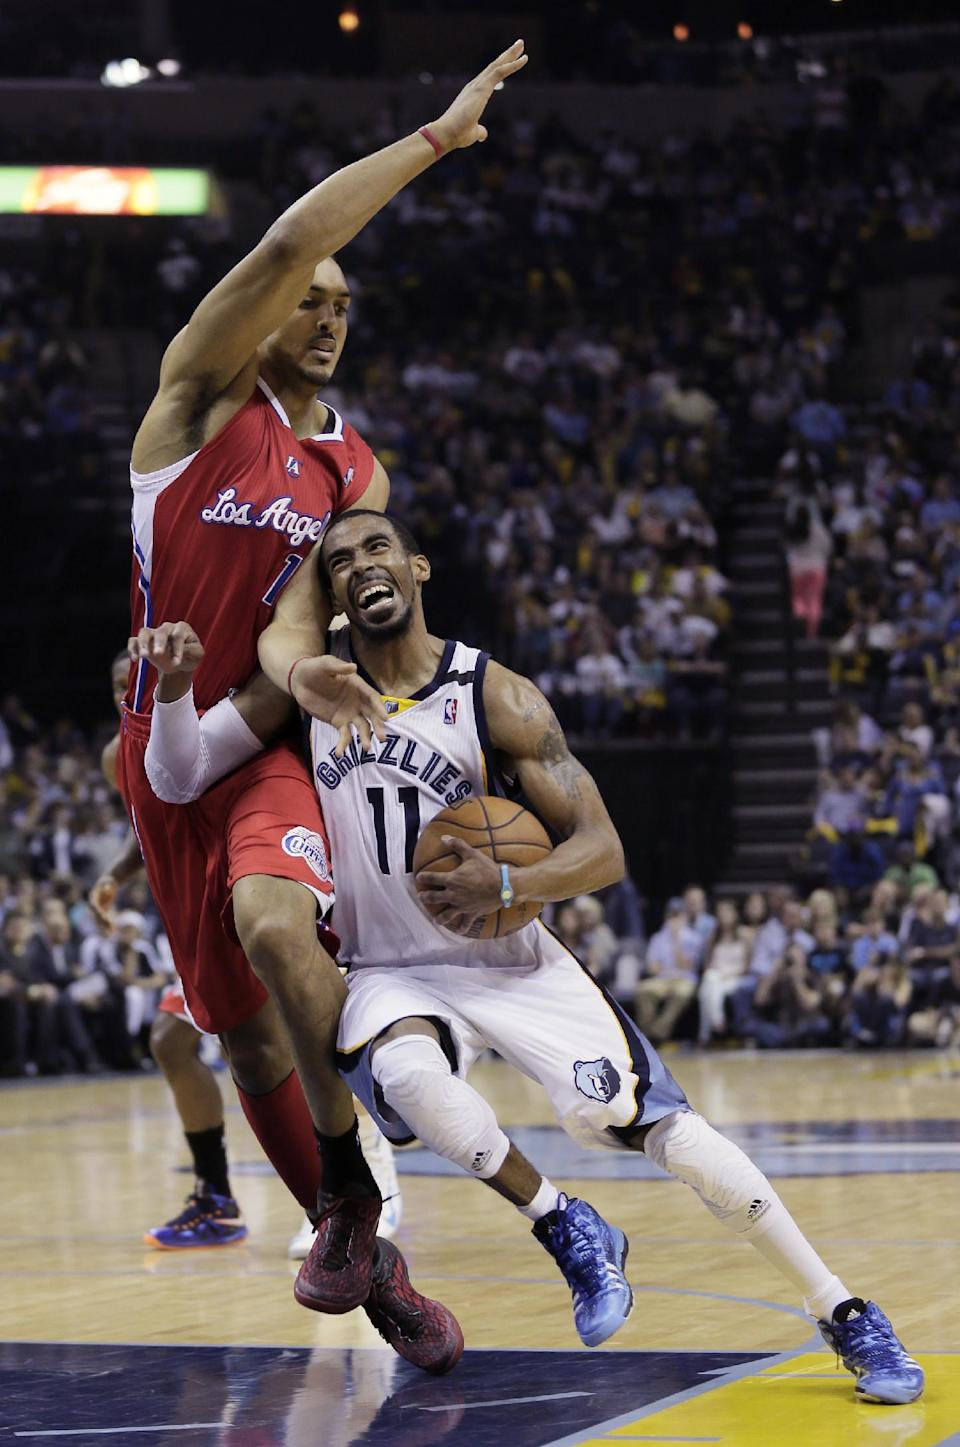 Memphis Grizzlies' Mike Conley (11) is fouled by Los Angeles Clippers' Ryan Hollins during the second half of Game 4 in a first-round NBA basketball playoff series in Memphis, Tenn., Saturday, April 27, 2013. The Grizzlies defeated the Clippers 104-83. (AP Photo/Danny Johnston)